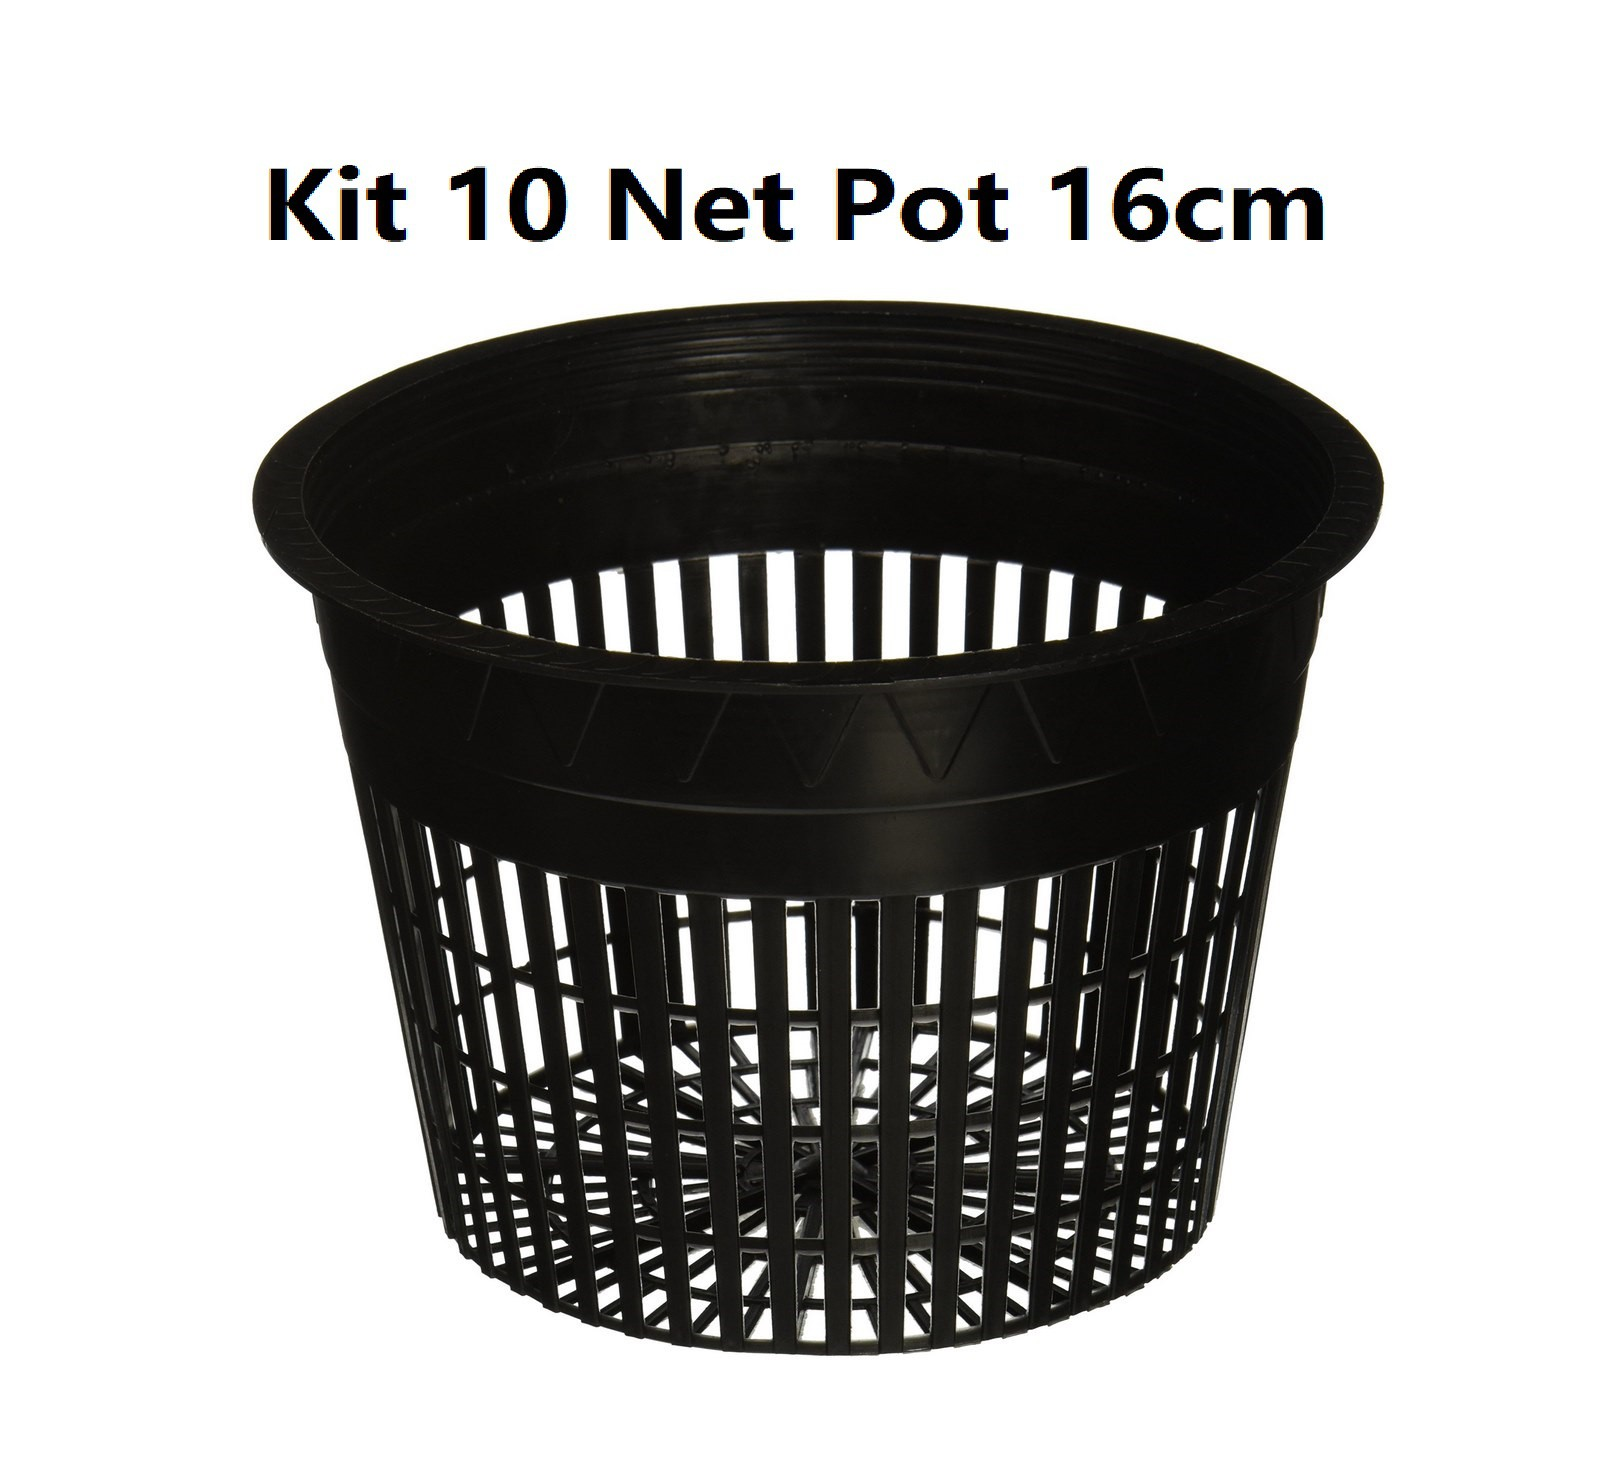 KIT 10 VASOS NET POT 16CM